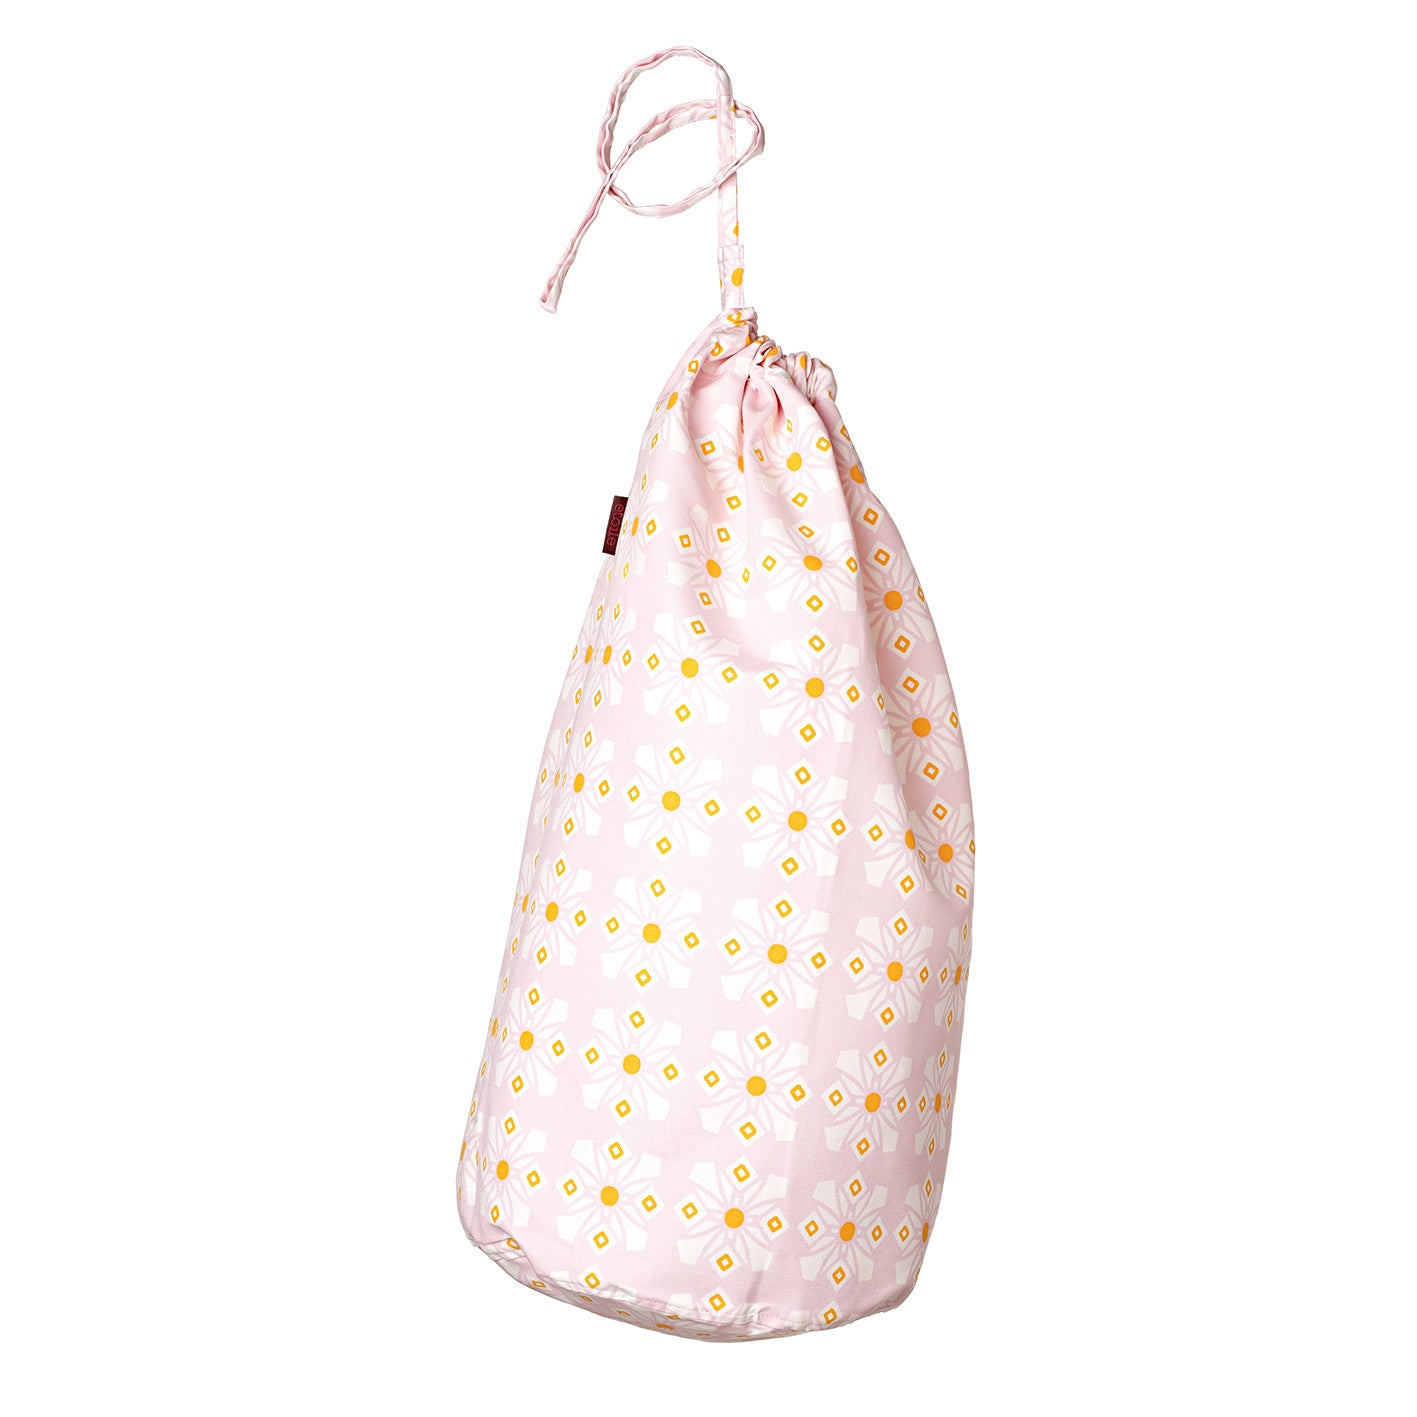 Dorothy Geometric Pattern Printed Cotton Linen Drawstring Laundry & Storage Bag - Tea Rose Light Pink and Yellow - Canada (USA)